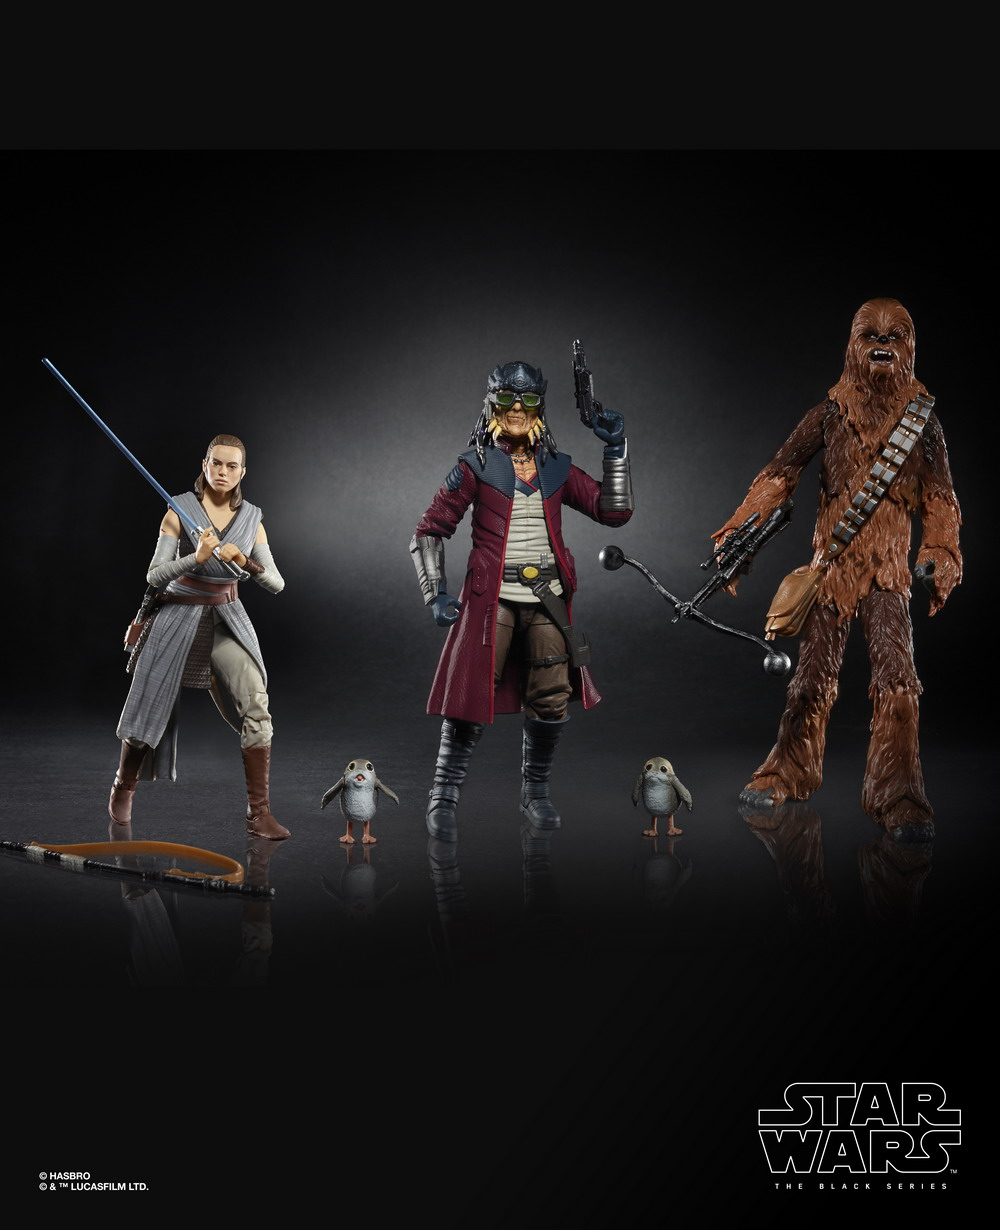 STAR WARS THE BLACK SERIES 6-INCH SMUGGLER'S RUN 4-PACK (oop)